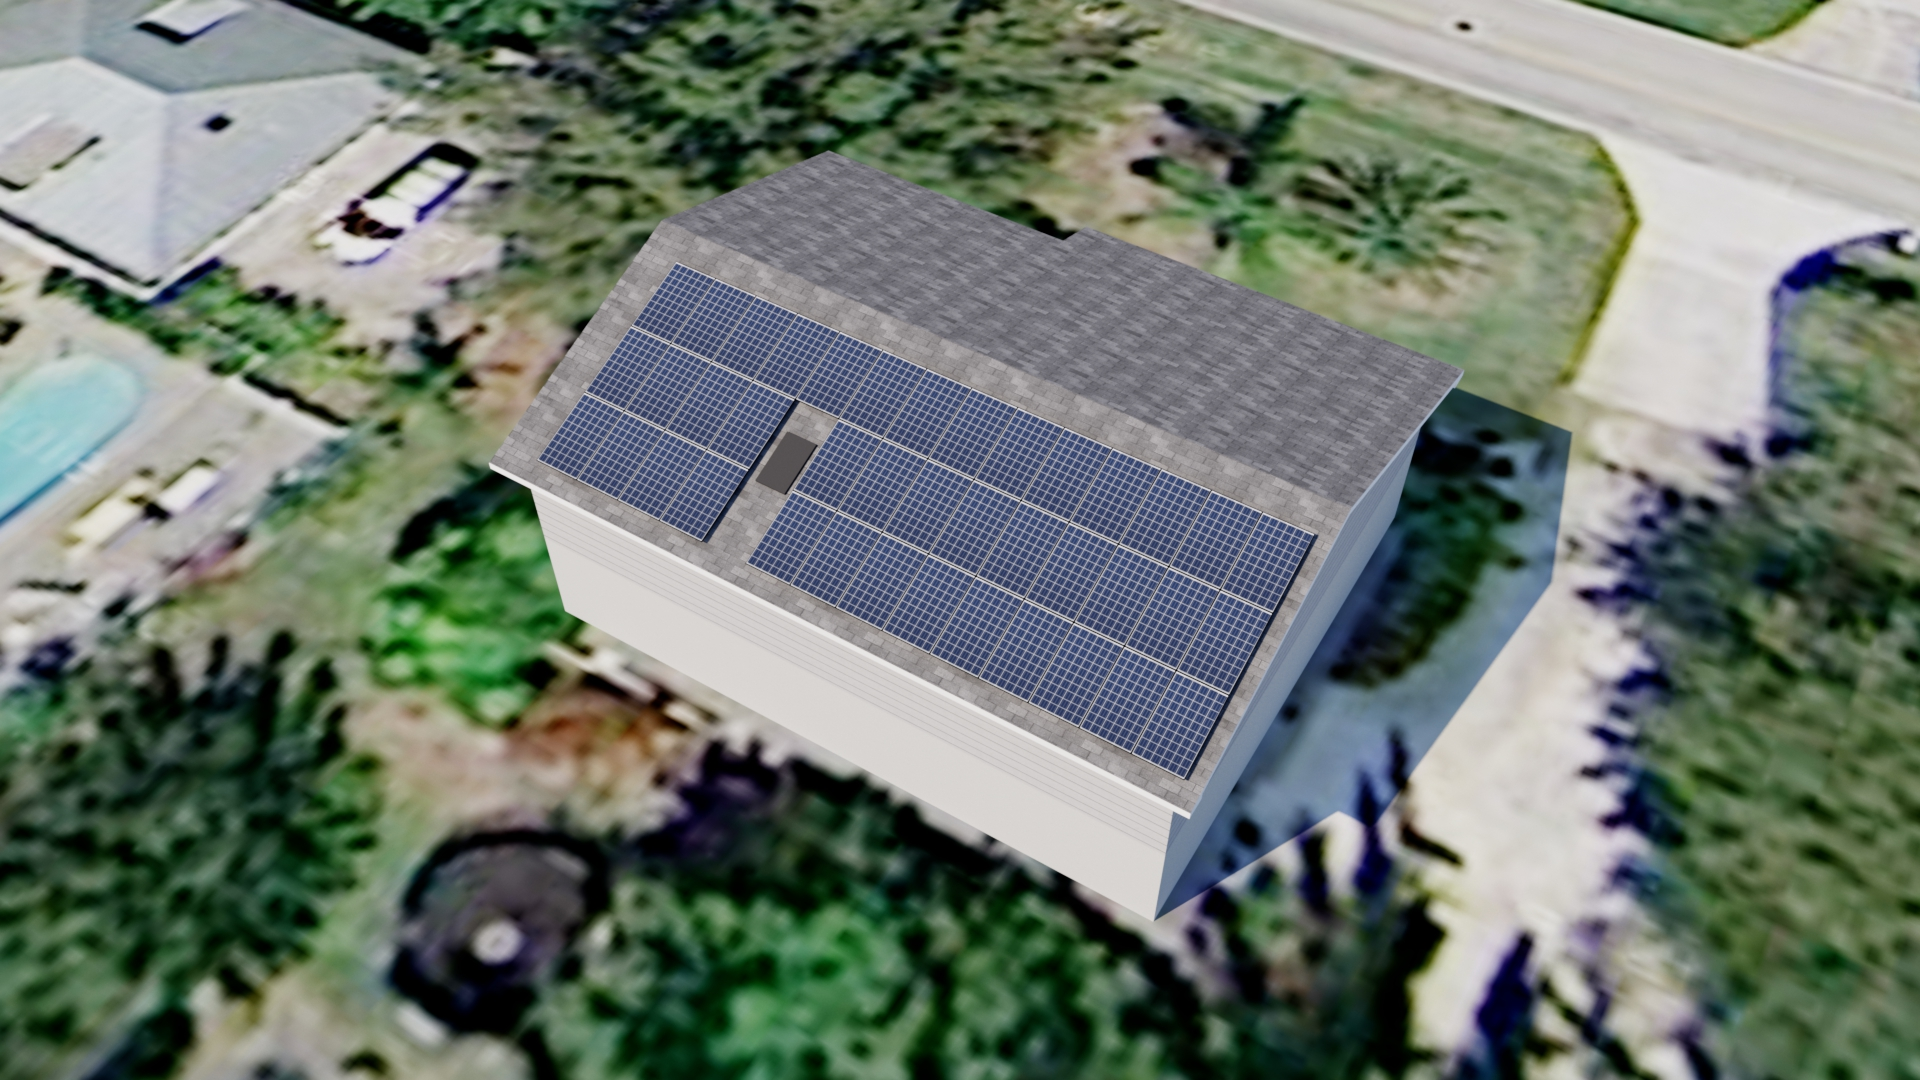 SanCap Solar Connect Photovoltaic Solar Panel System Design (38)